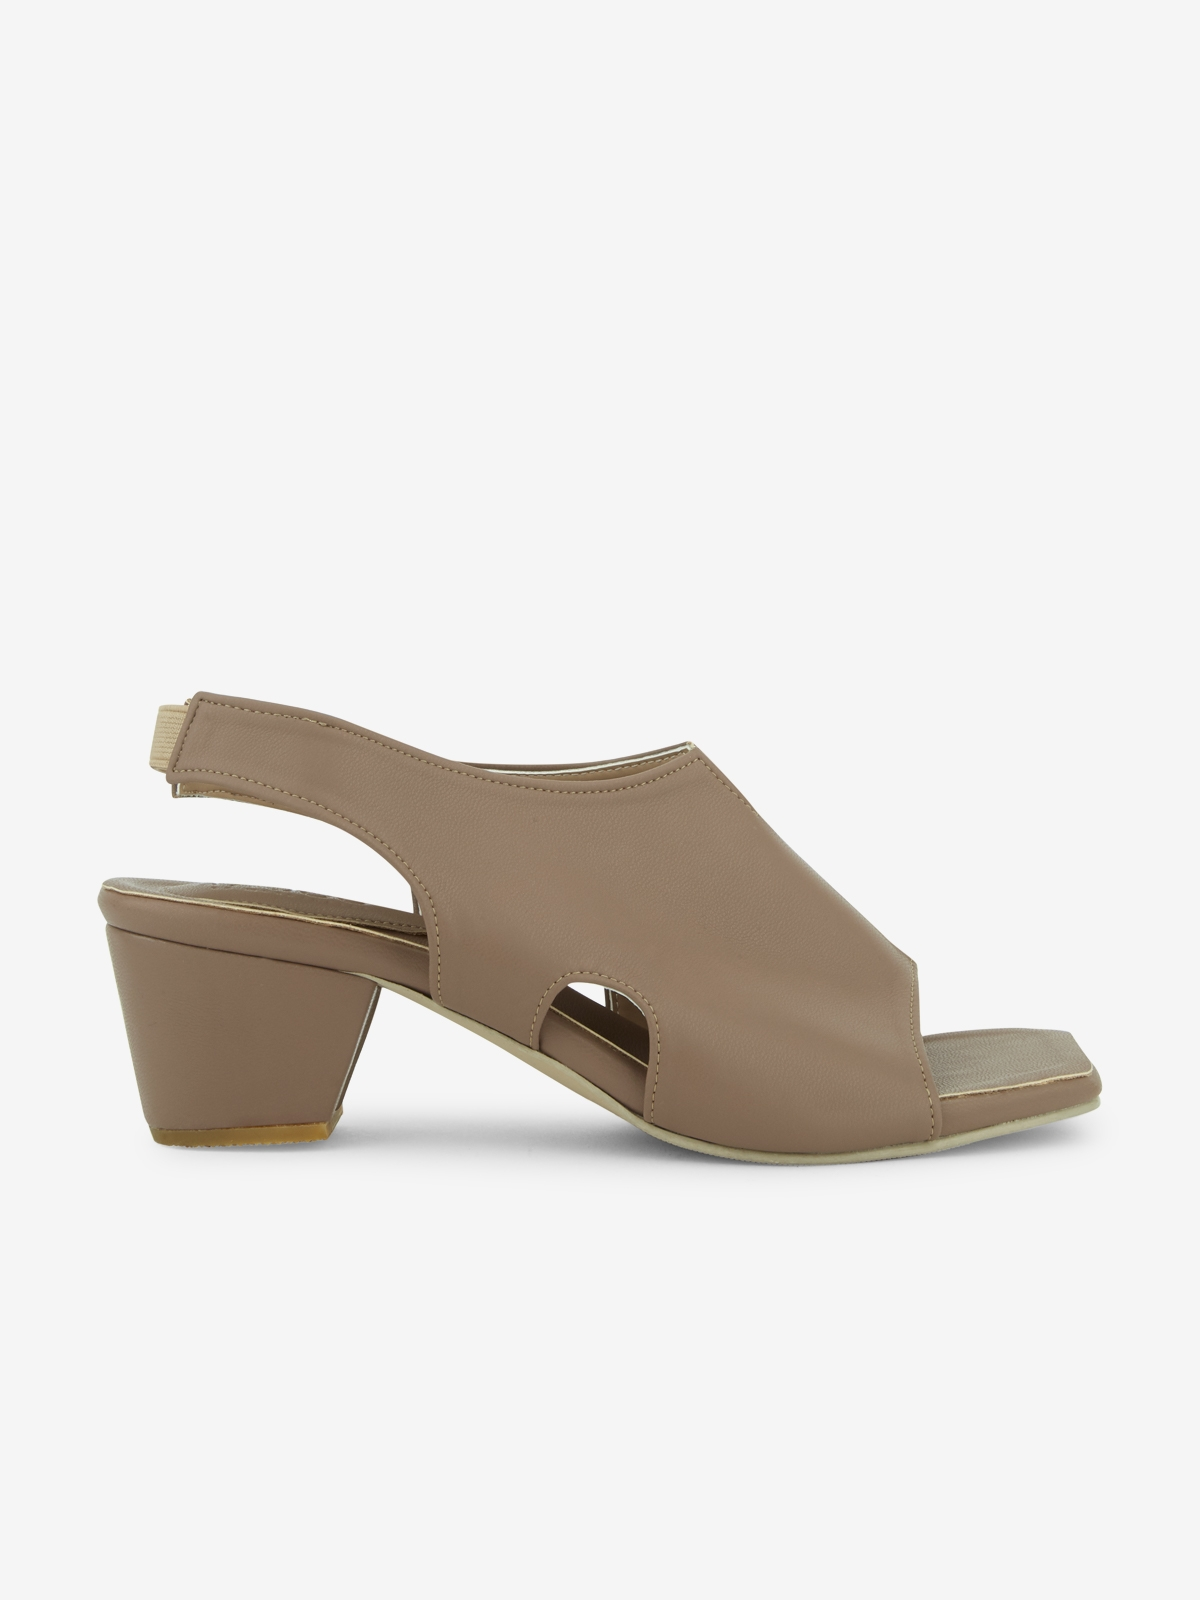 Mosstories Decon Square Toe Heels Taupe